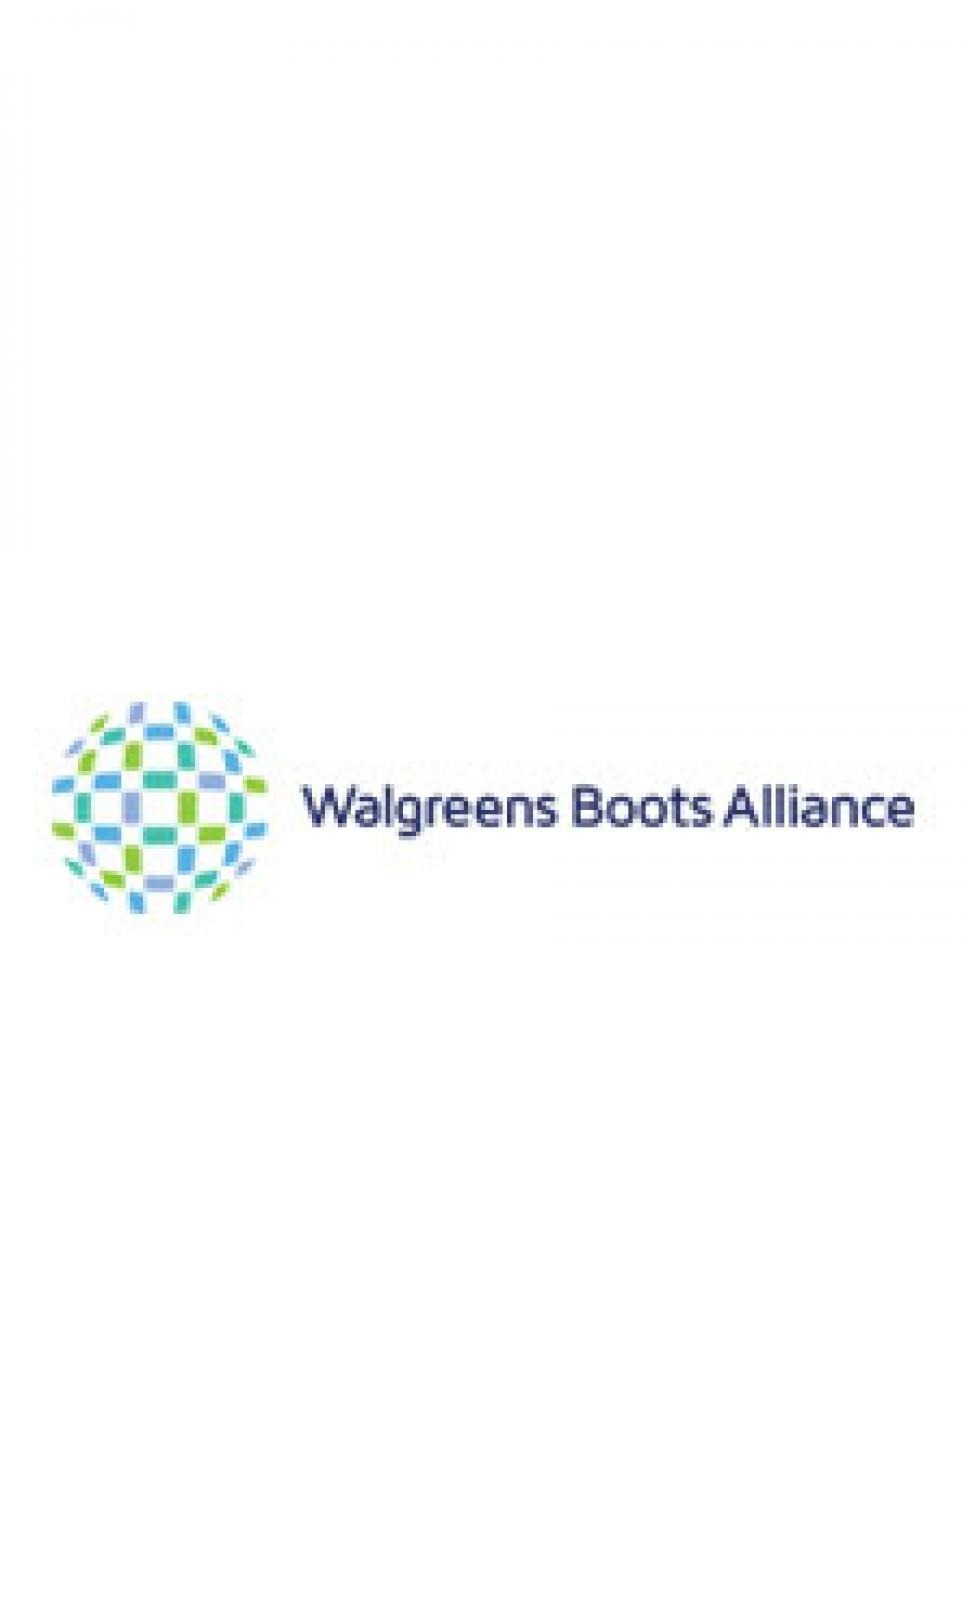 The Walgreens Boots Alliance logo pictured on a white background